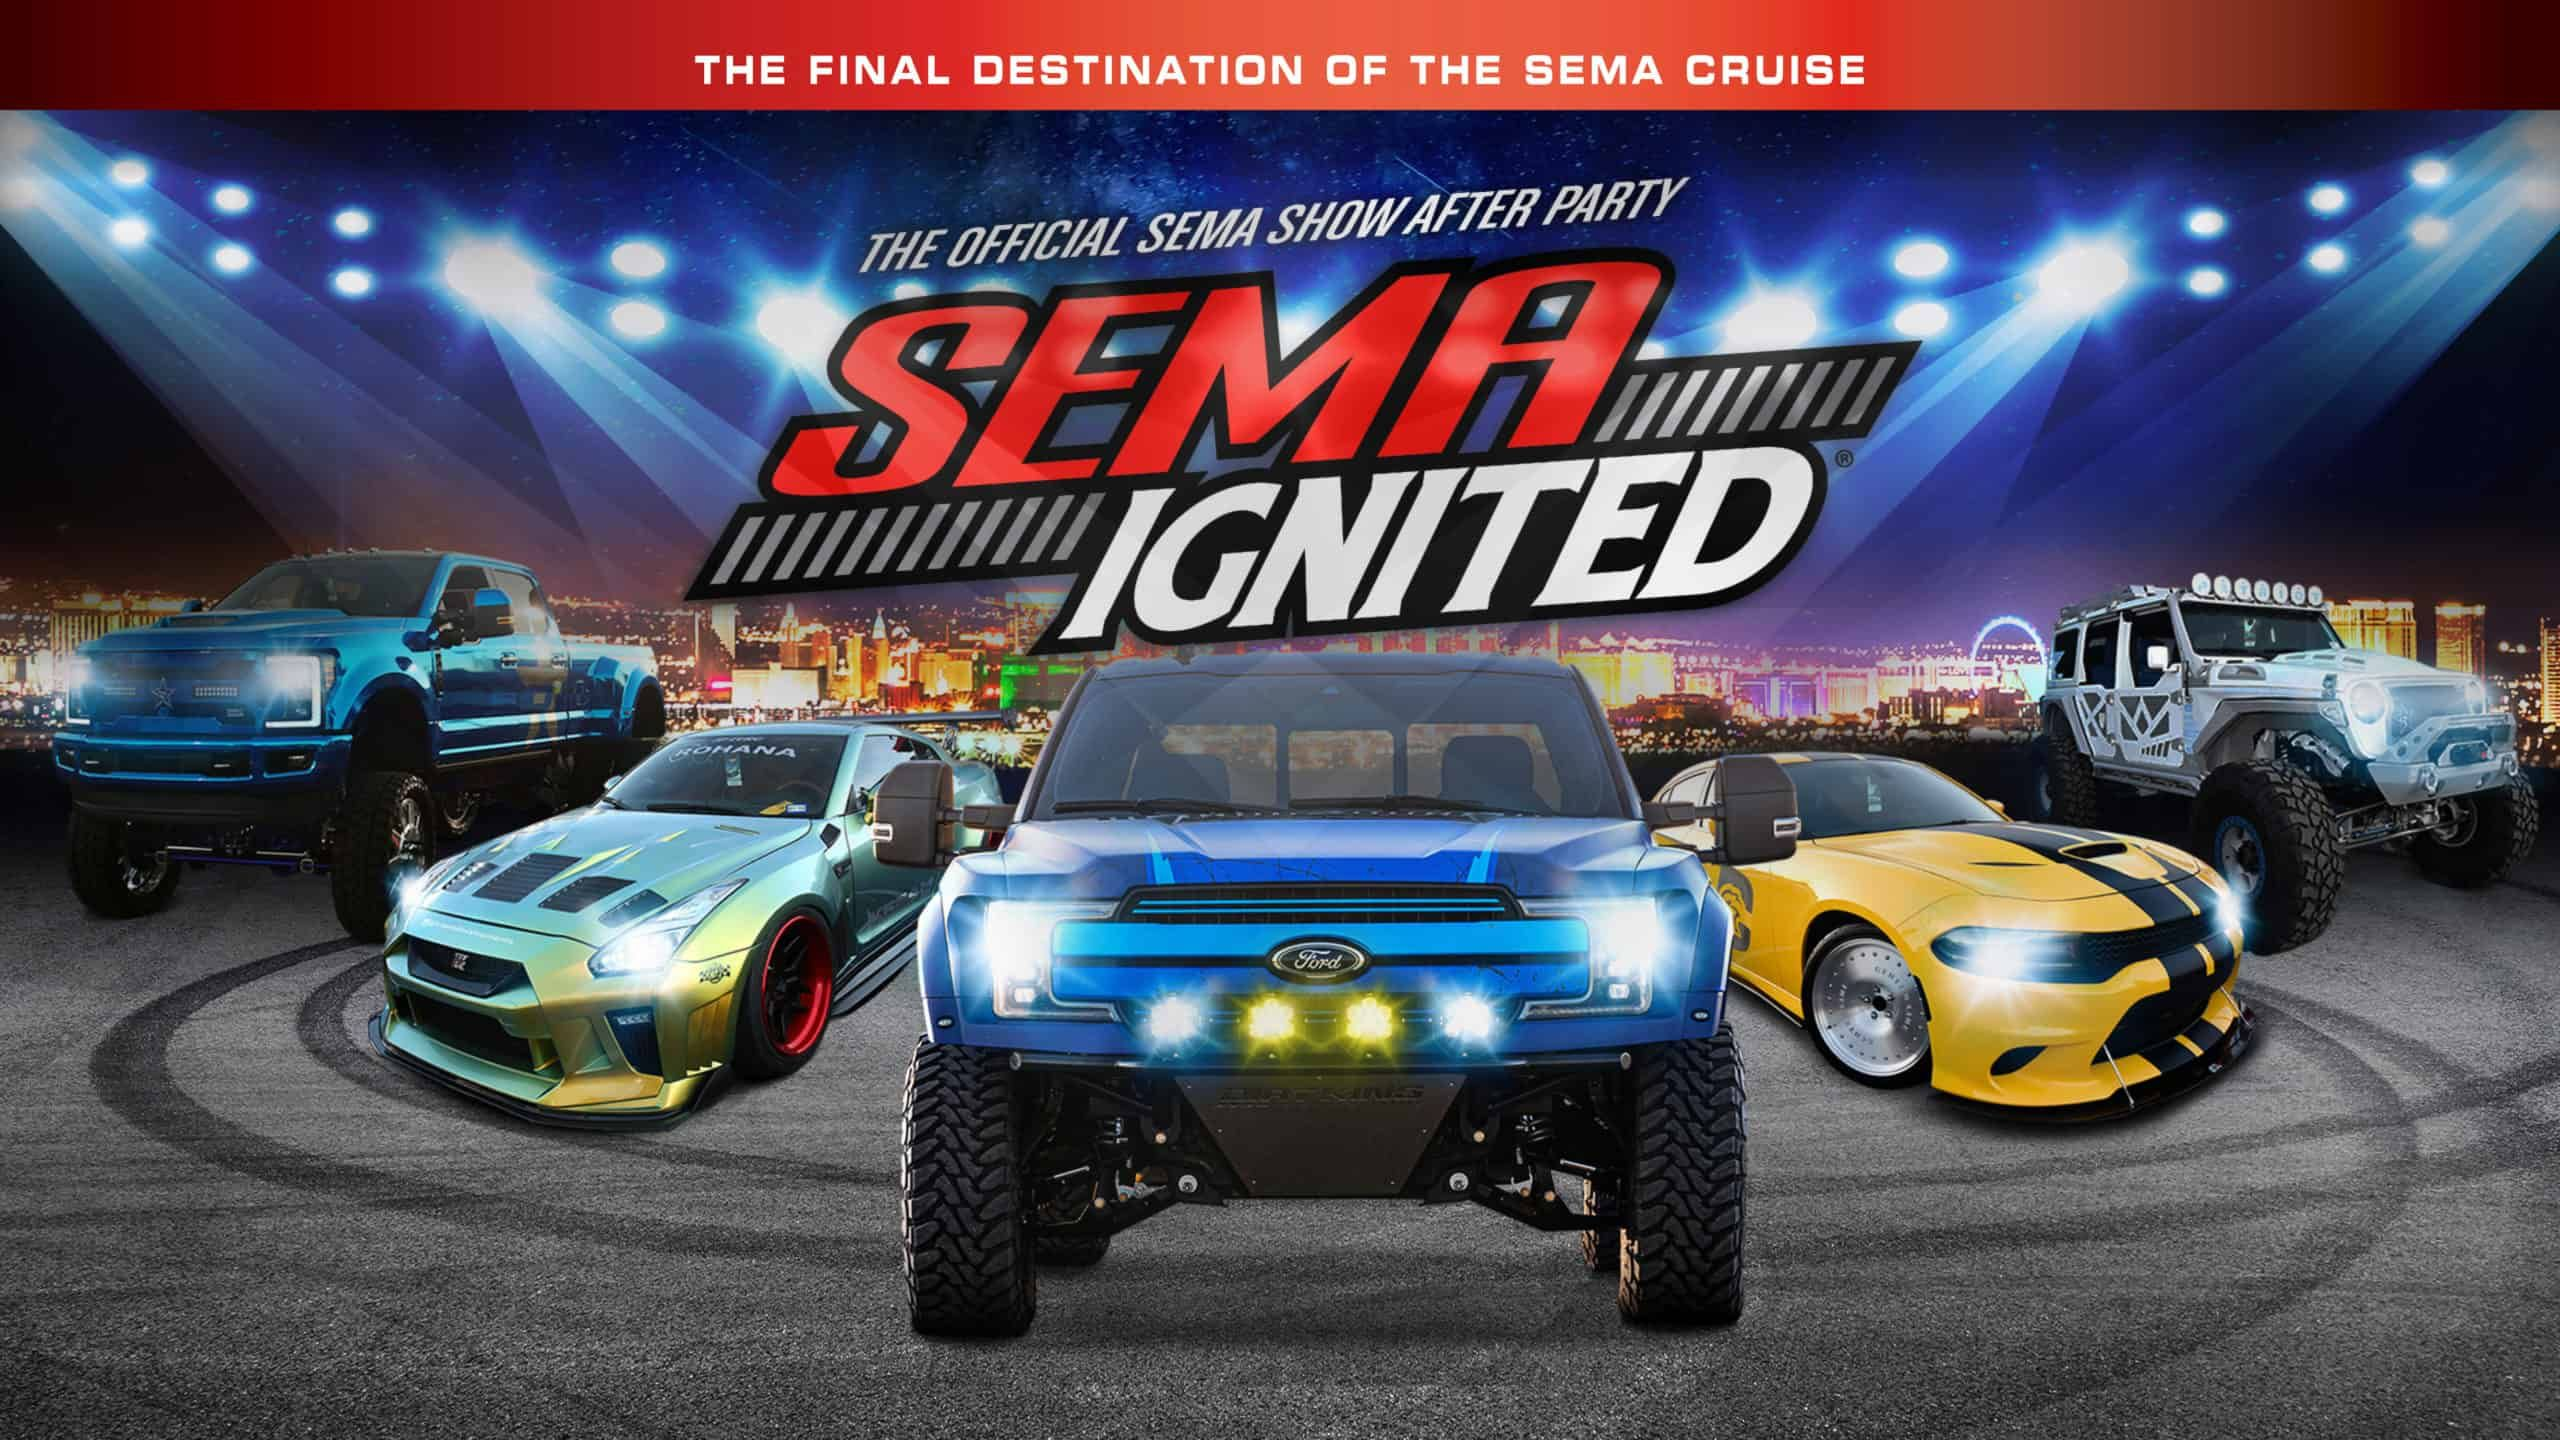 Halloween At Sema 2020 Parties SEMA Ignited 2020 ~ The SEMA Show After Party in 2020 | Ignite